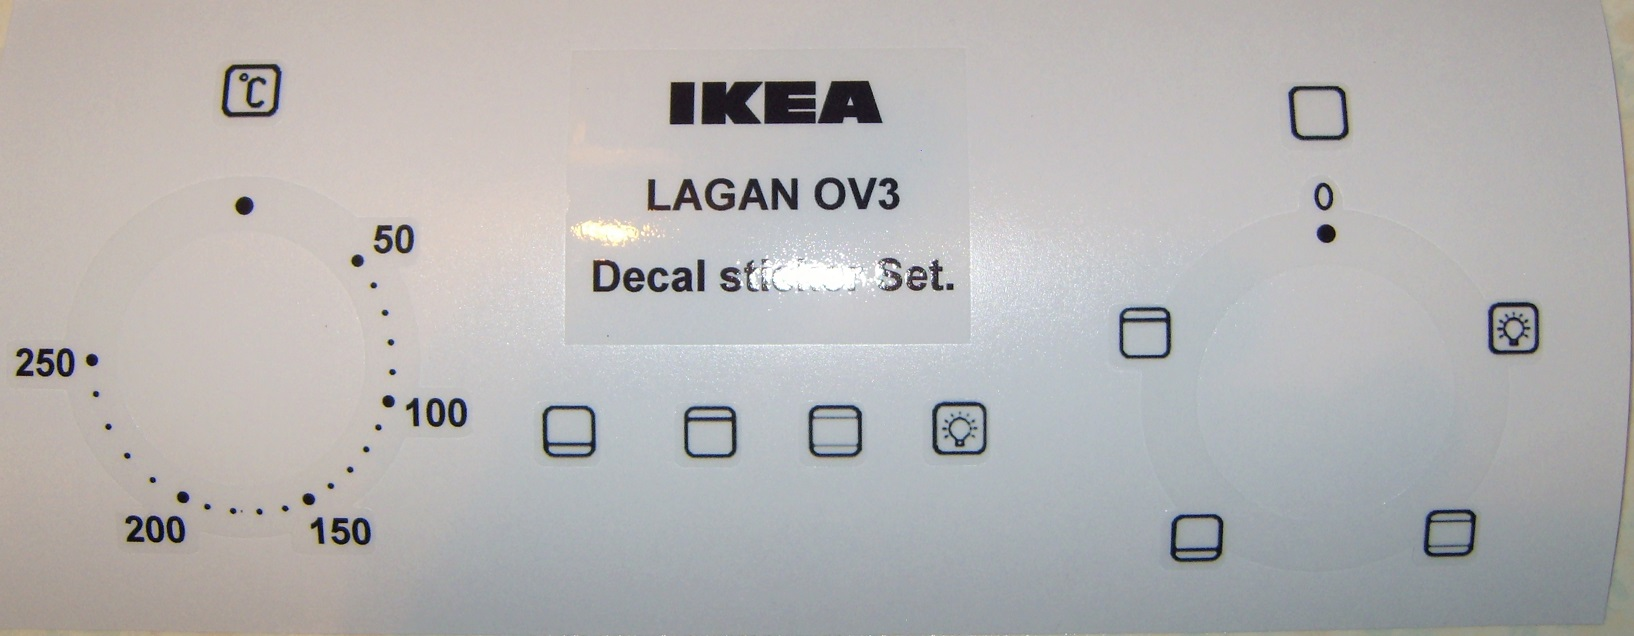 LAGAN OV3 Oven decal sticker set, may fit others.